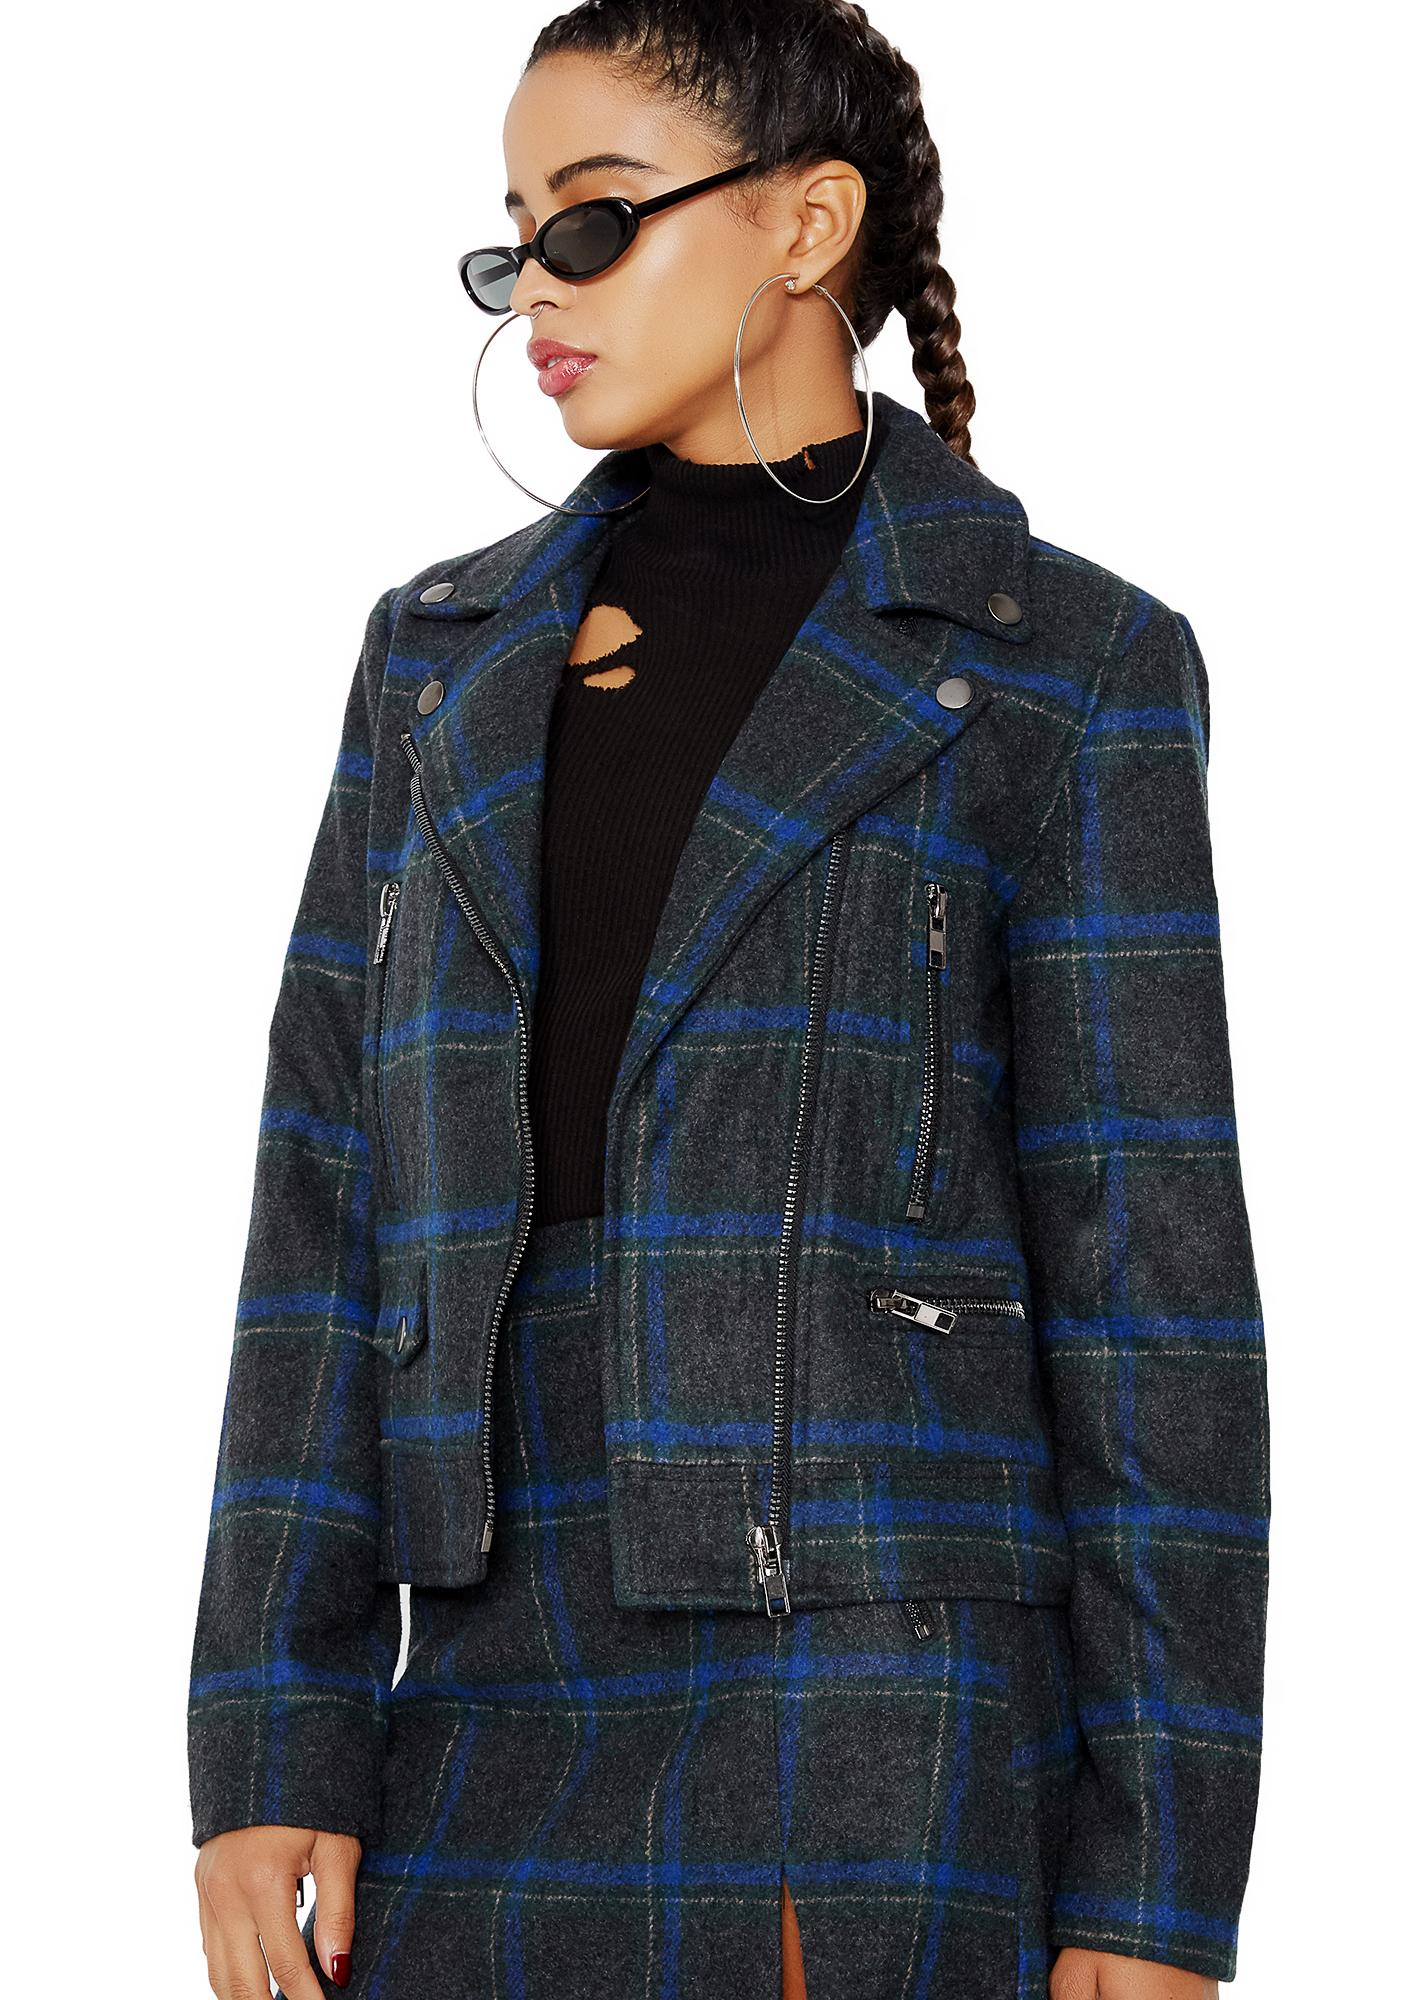 Valley Gurl Moto Jacket